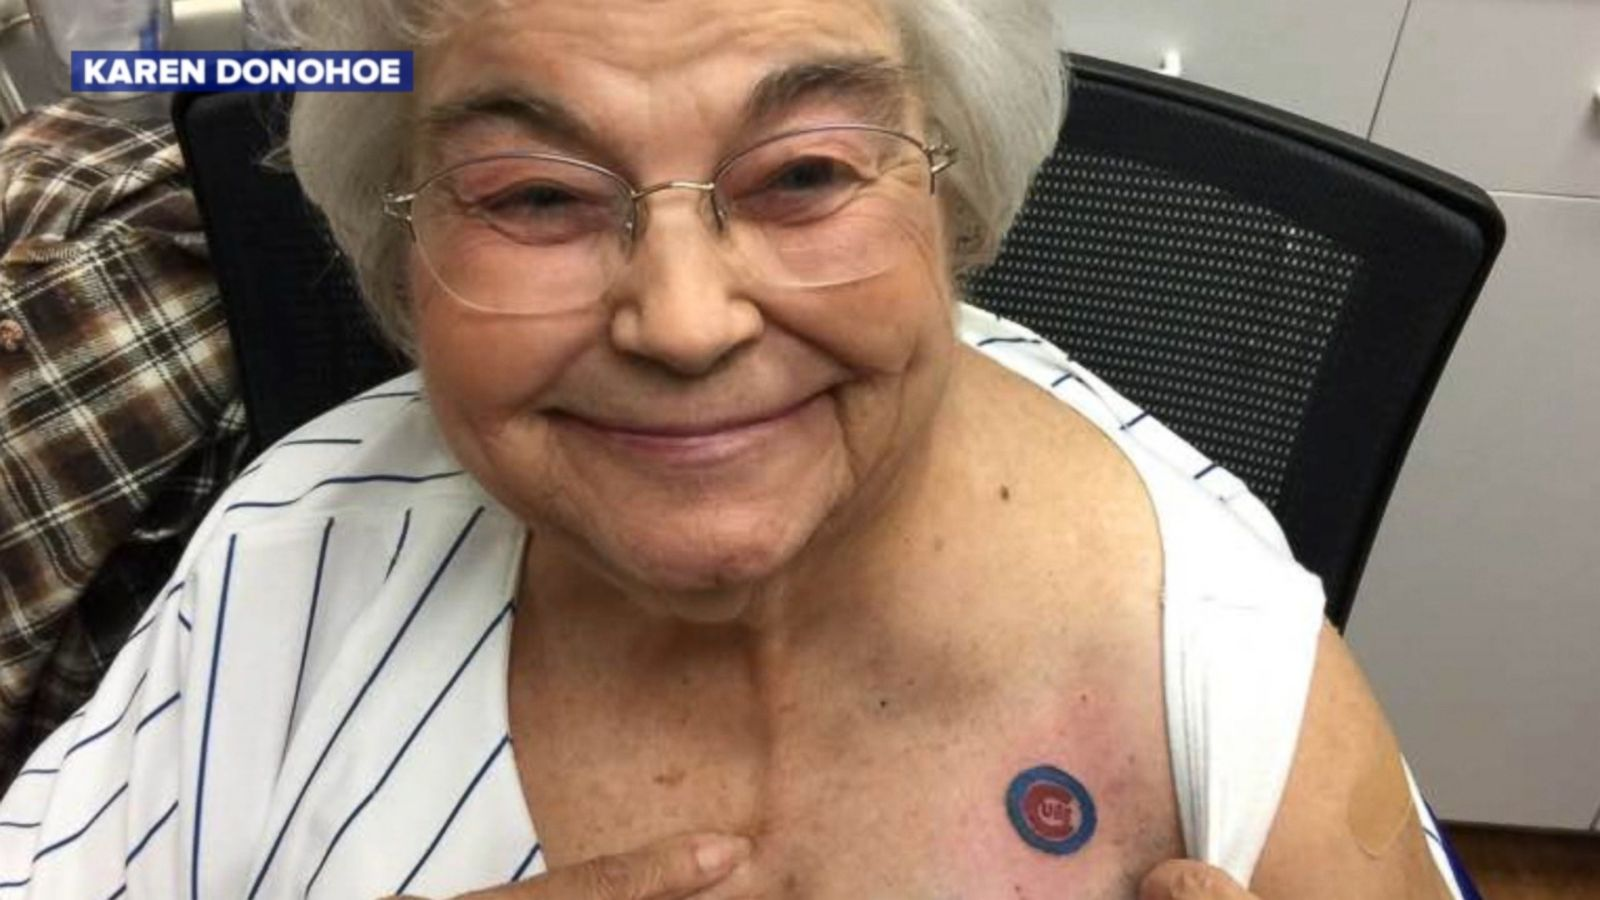 c850da41f 82-Year-Old Cubs Fan Gets Team Tattoo With Daughter and Grandson - ABC News